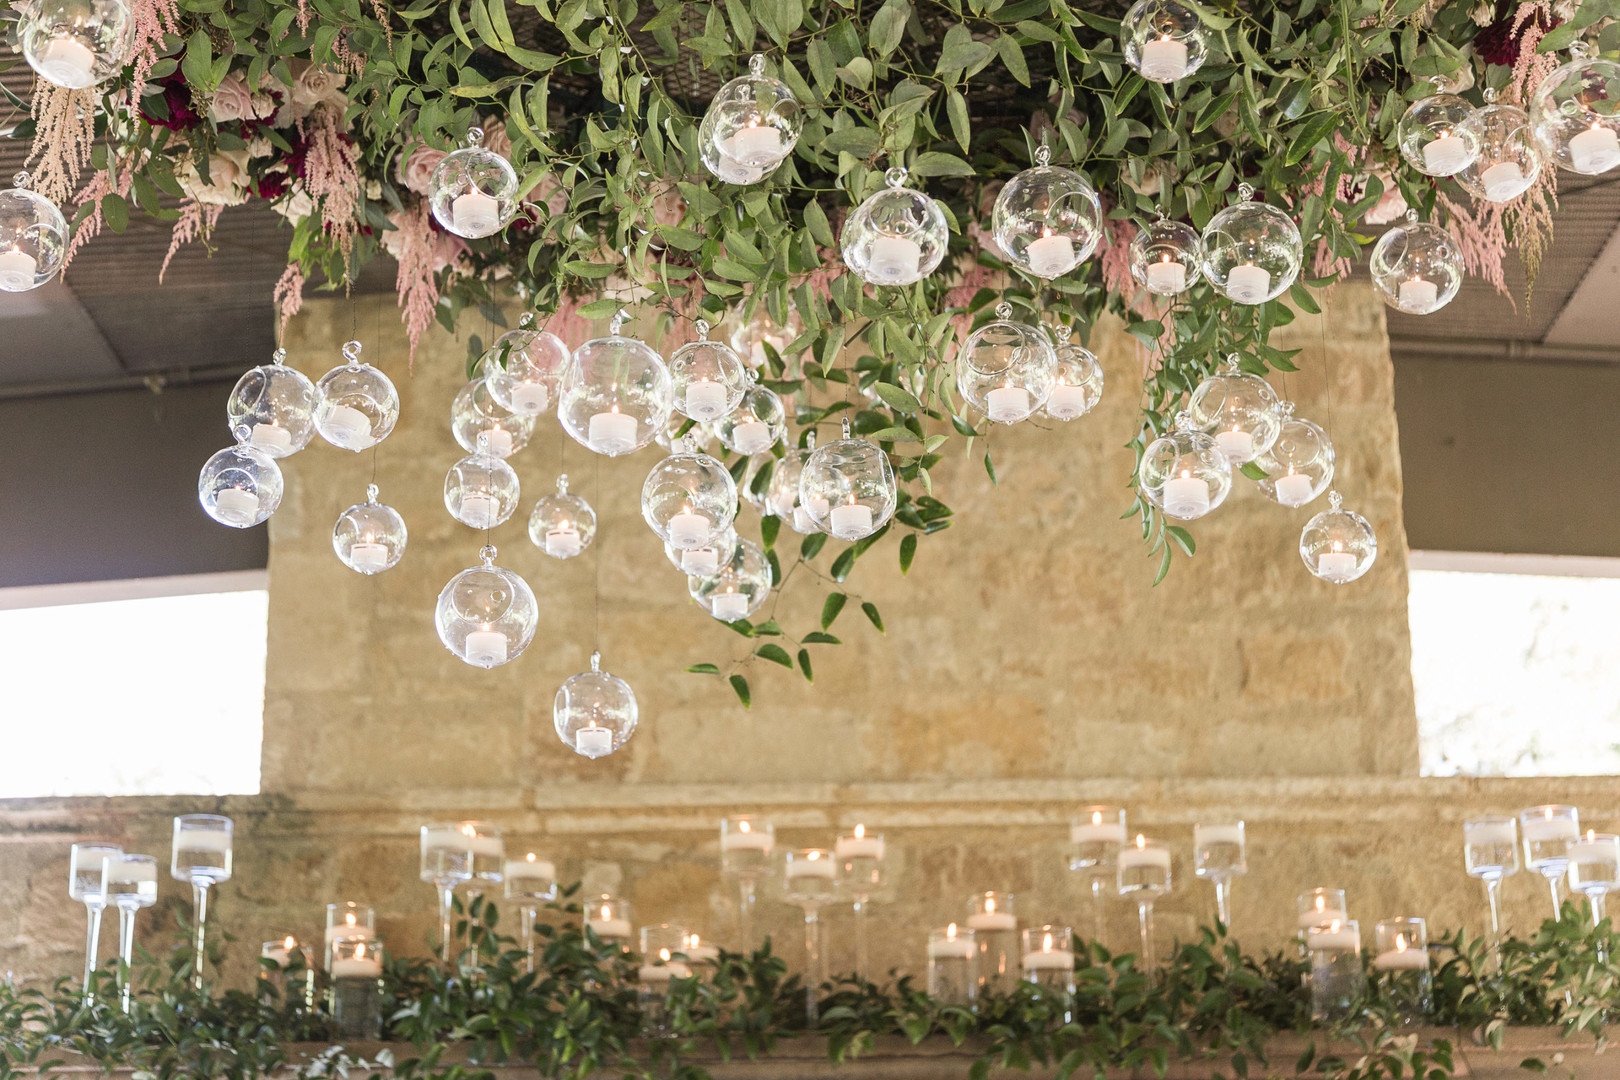 hanging candles in glass globes